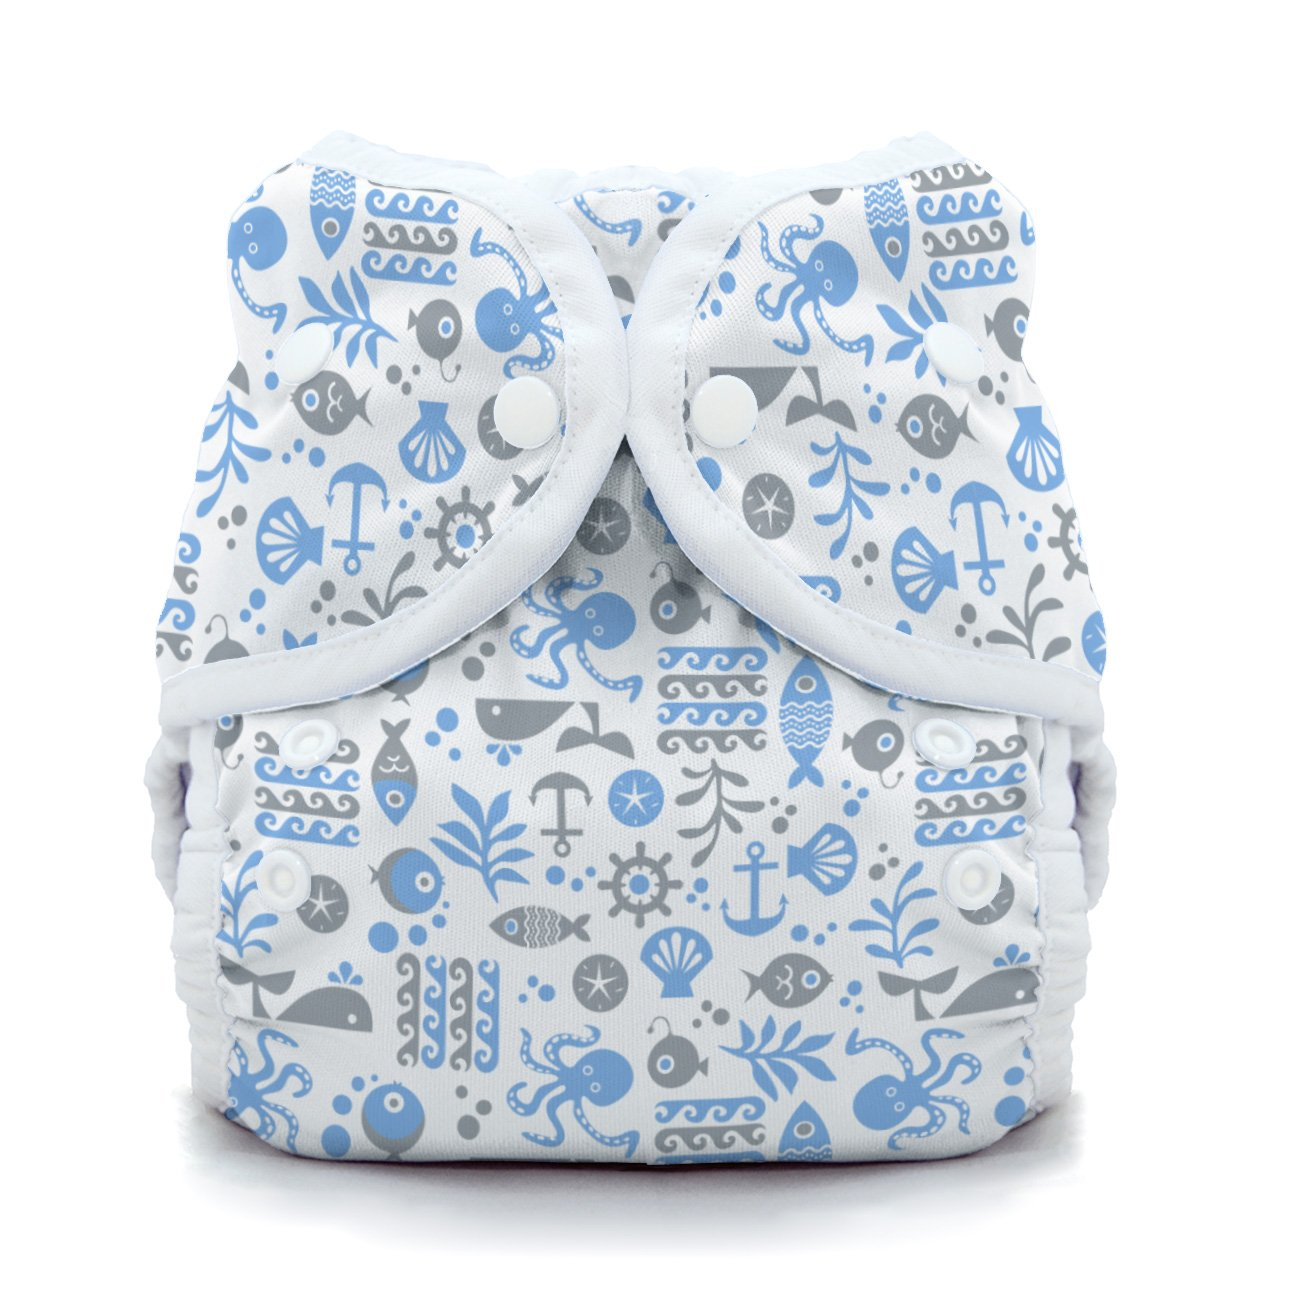 Thirsties Duo Wrap Cloth Diaper Cover - Ocean Life - Size 1 - Snap